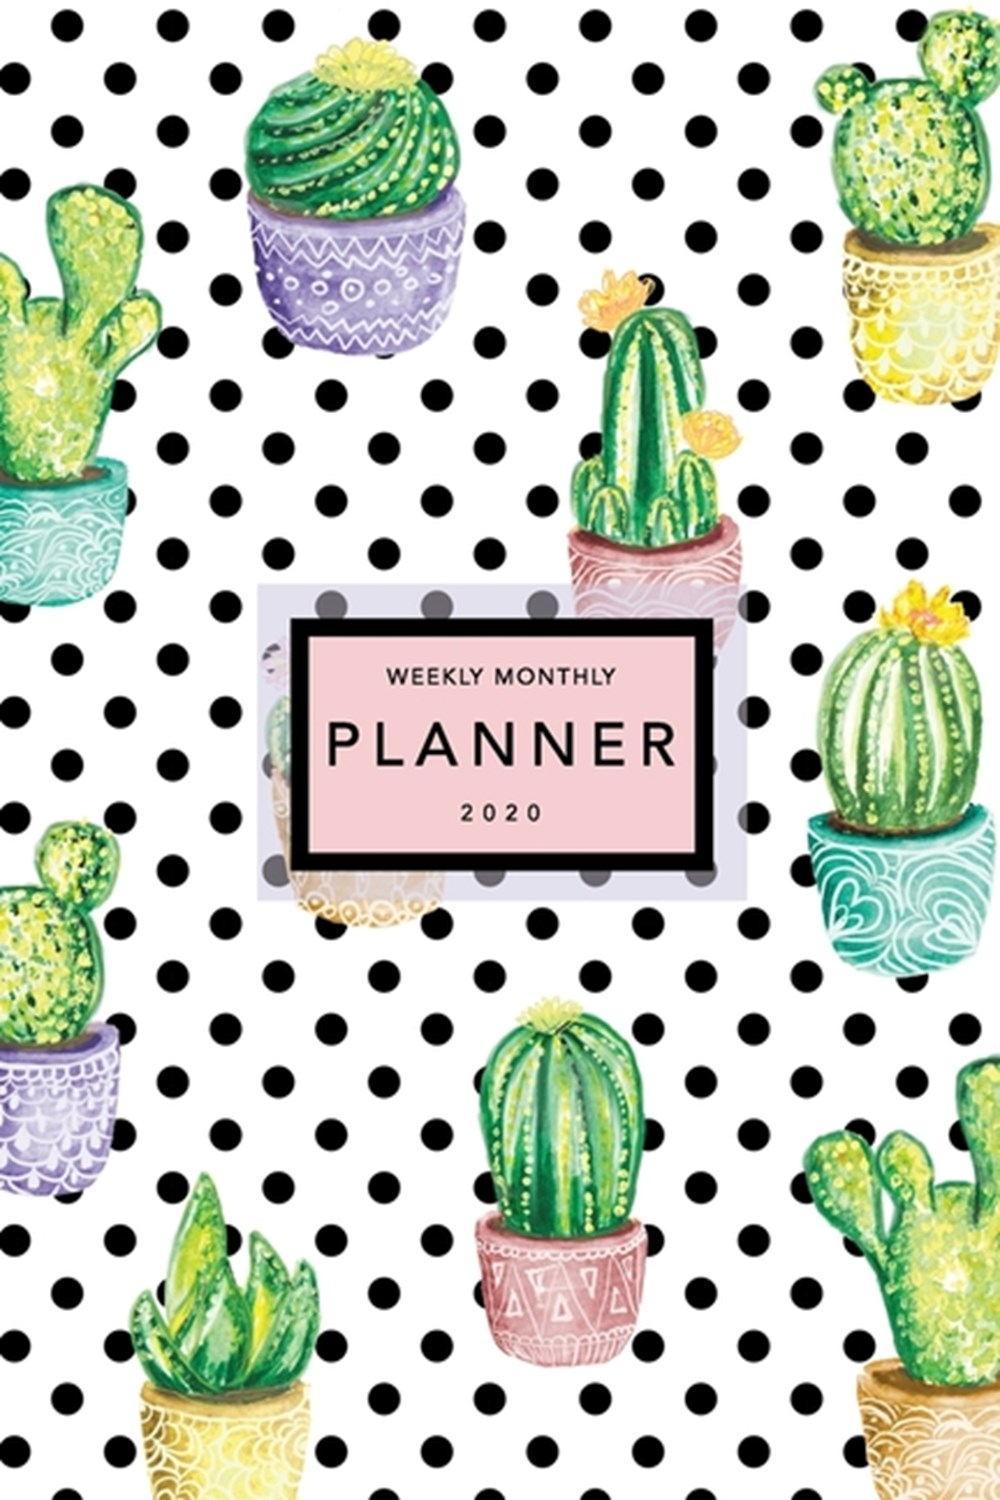 Weekly Monthly Planner 2020 Cactus Print - 6x9 in - 2020 Calendar Organizer with Bonus Dotted Grid P